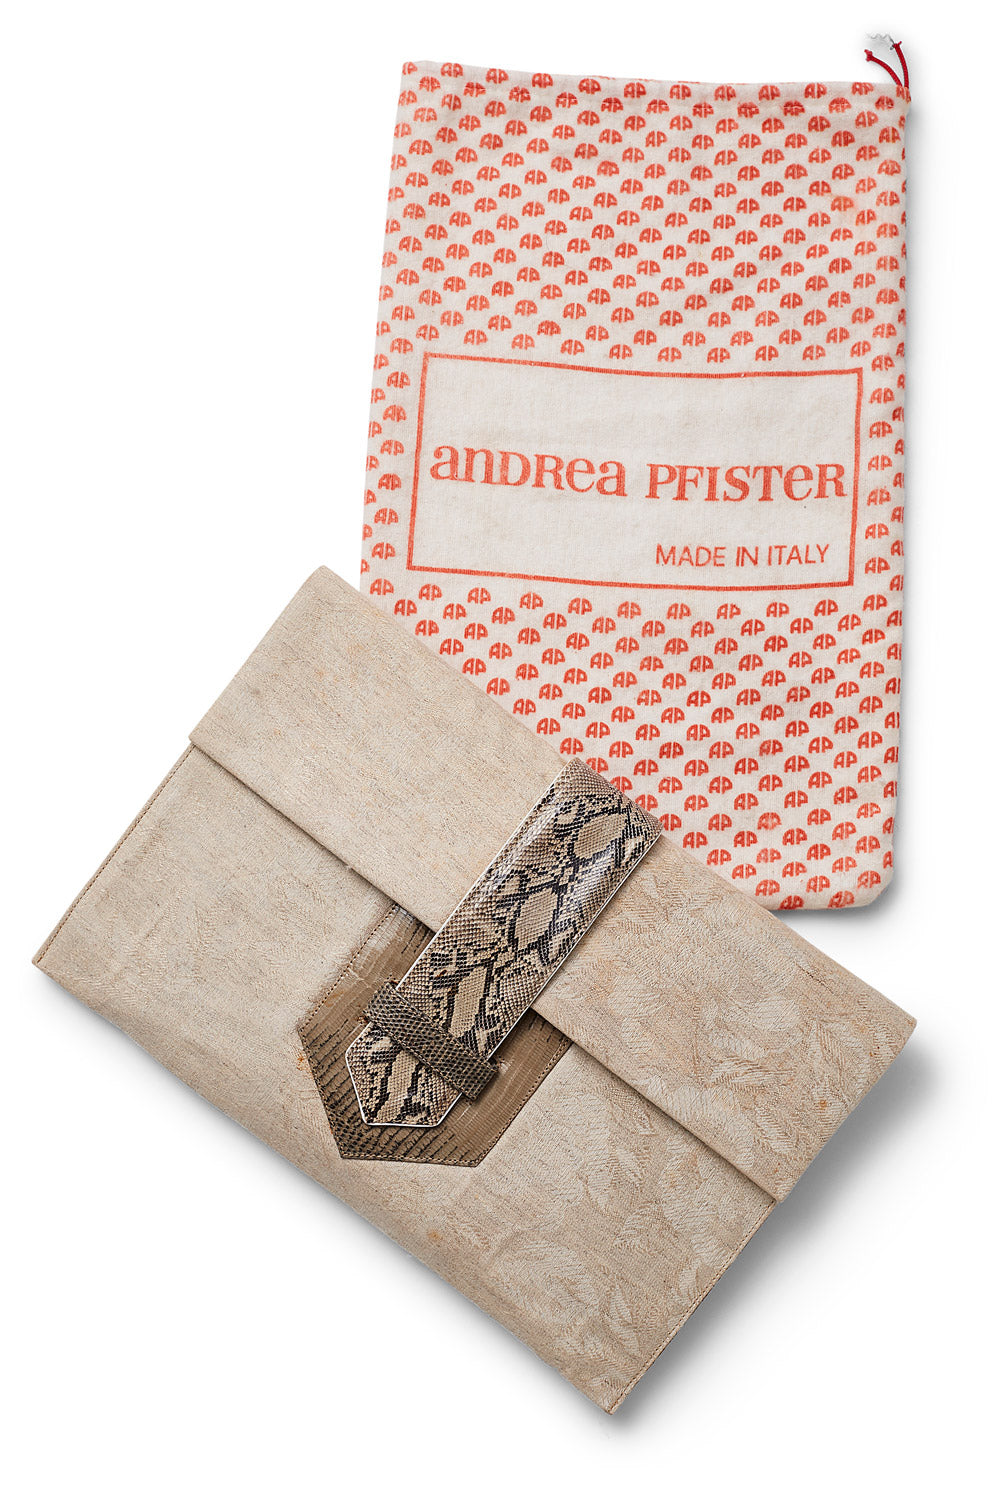 Andrea Pfister <br> 1970's/80's brocade & snakeskin envelope clutch with crossbody strap